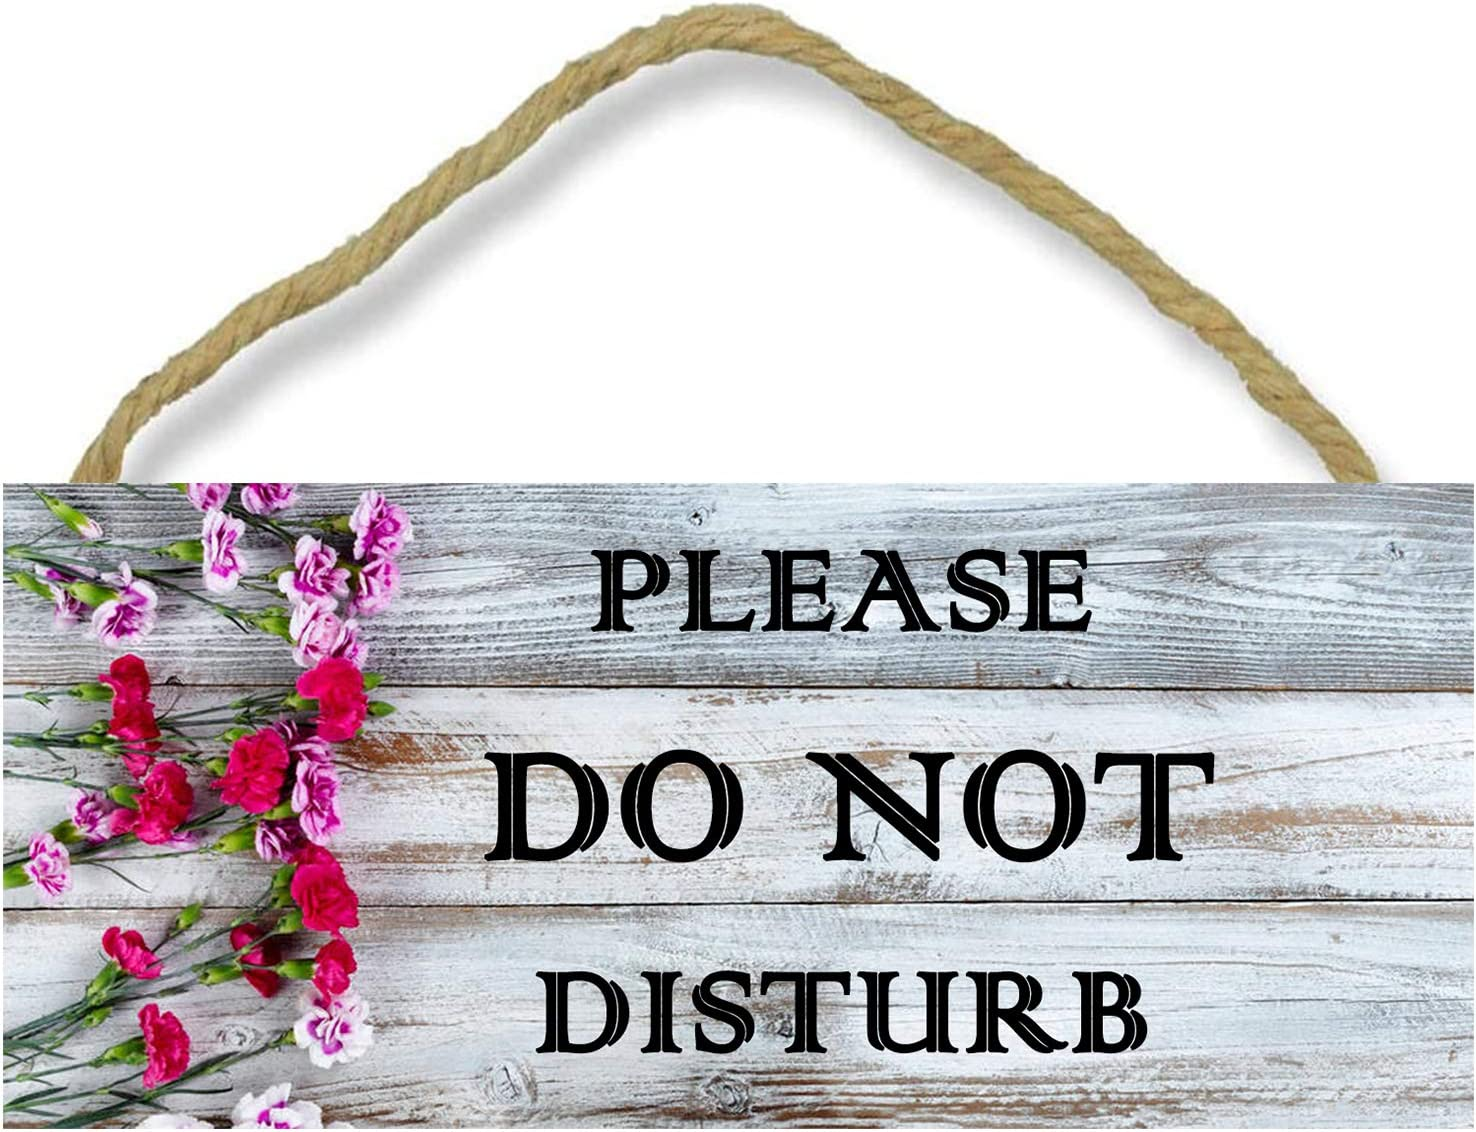 WSNIHO Do Not Disturb Door Sign, Double Sided Decorative Wood Sign for Home, Offices, Clinics, Law Firms, Hotels or During Therapy, Spa Treatment, Counseling Sessions (10